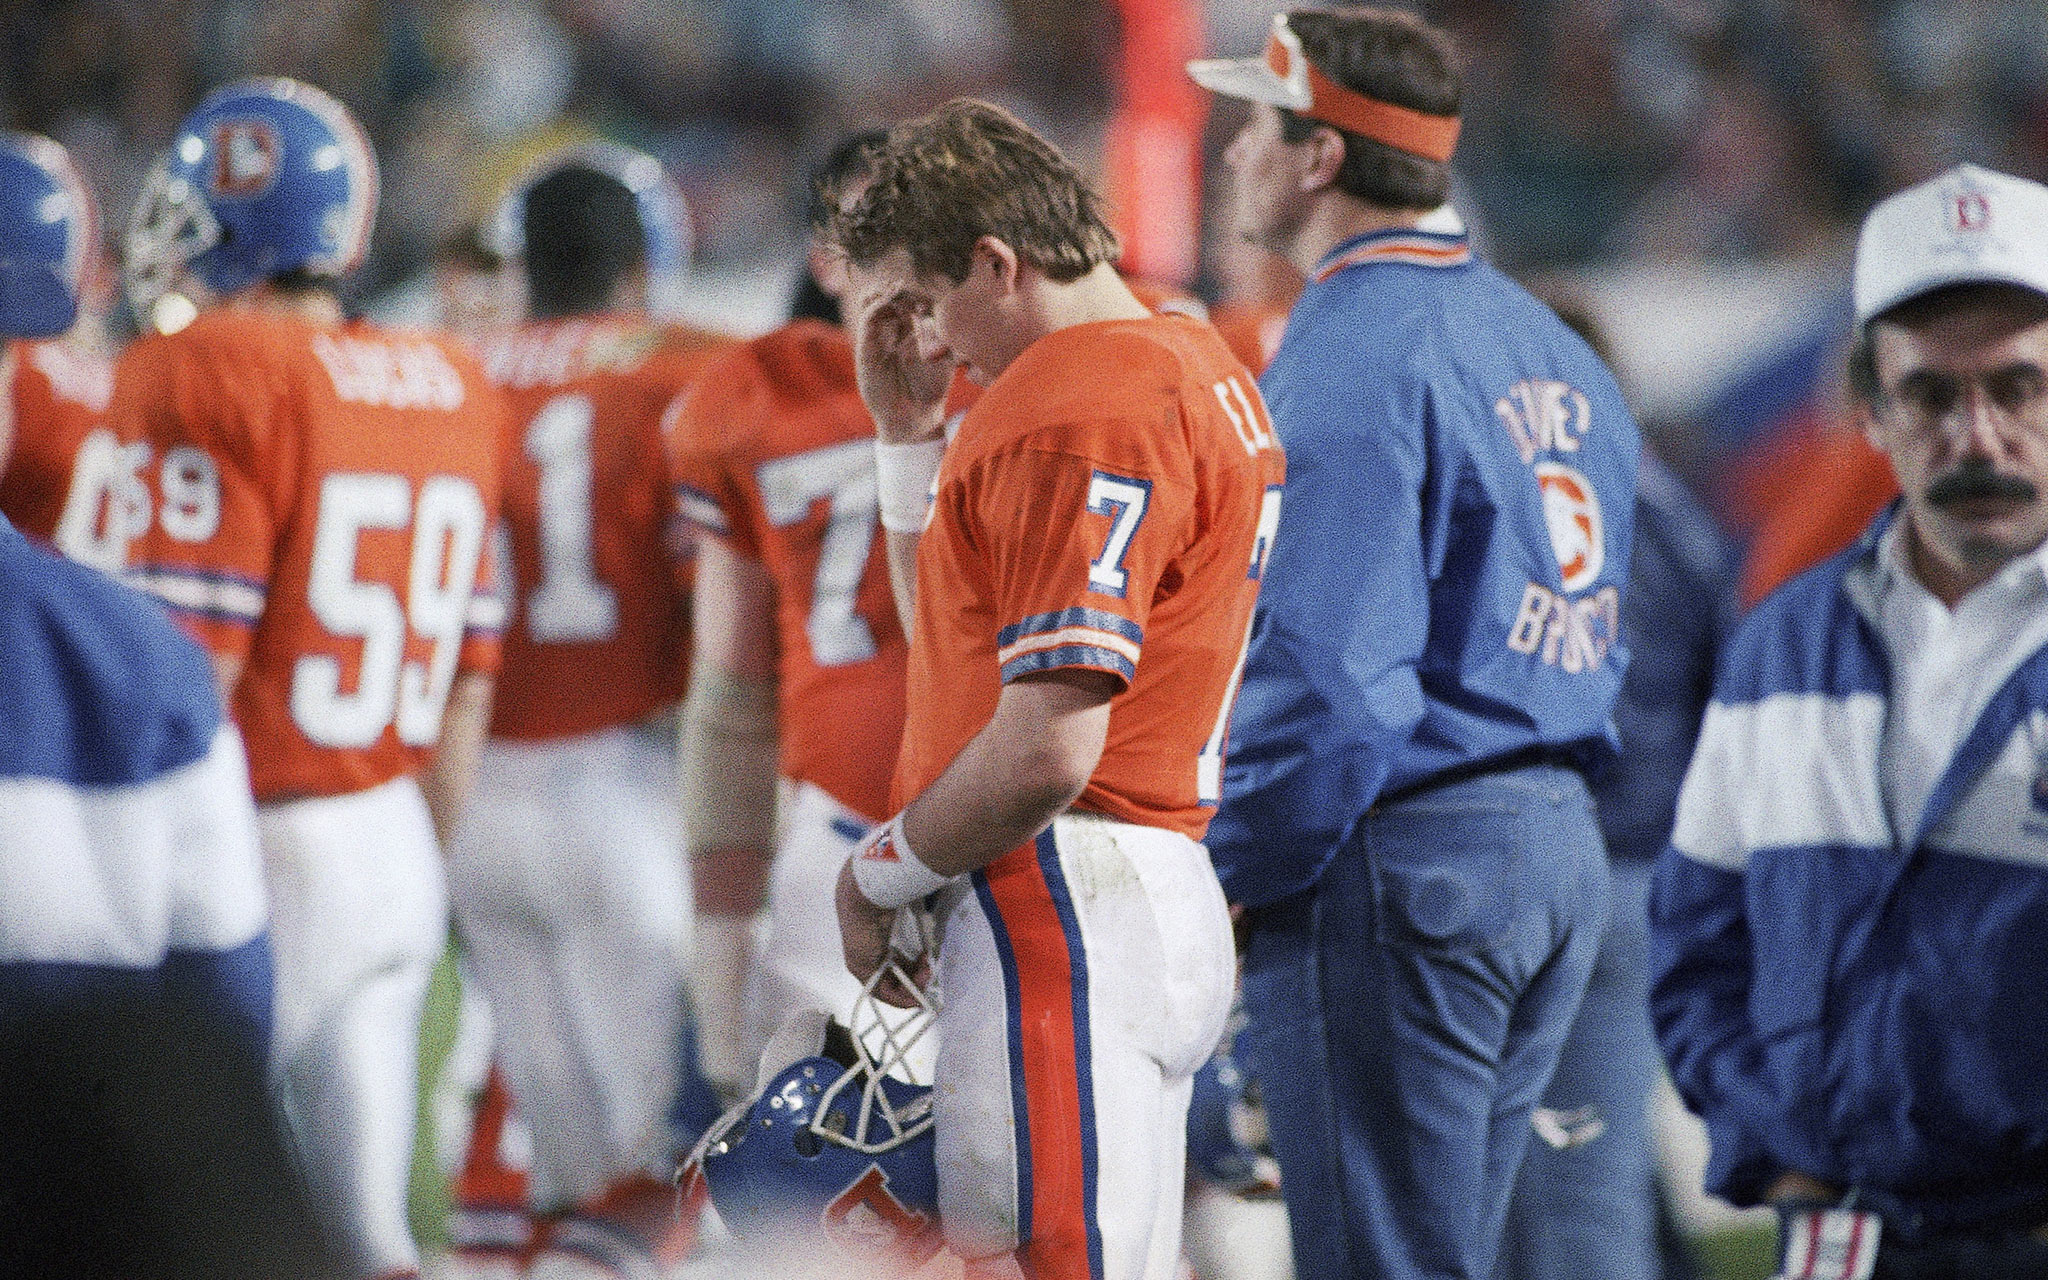 john elway helicopter with Most Career Interceptions Super Bowl Quarterback Super Bowl Facts on Page2 also 79563572 as well Us Nfl Broncos Manning Deal IdUSBRE82J13120120320 additionally Most Career Interceptions Super Bowl Quarterback Super Bowl Facts also Game detail.